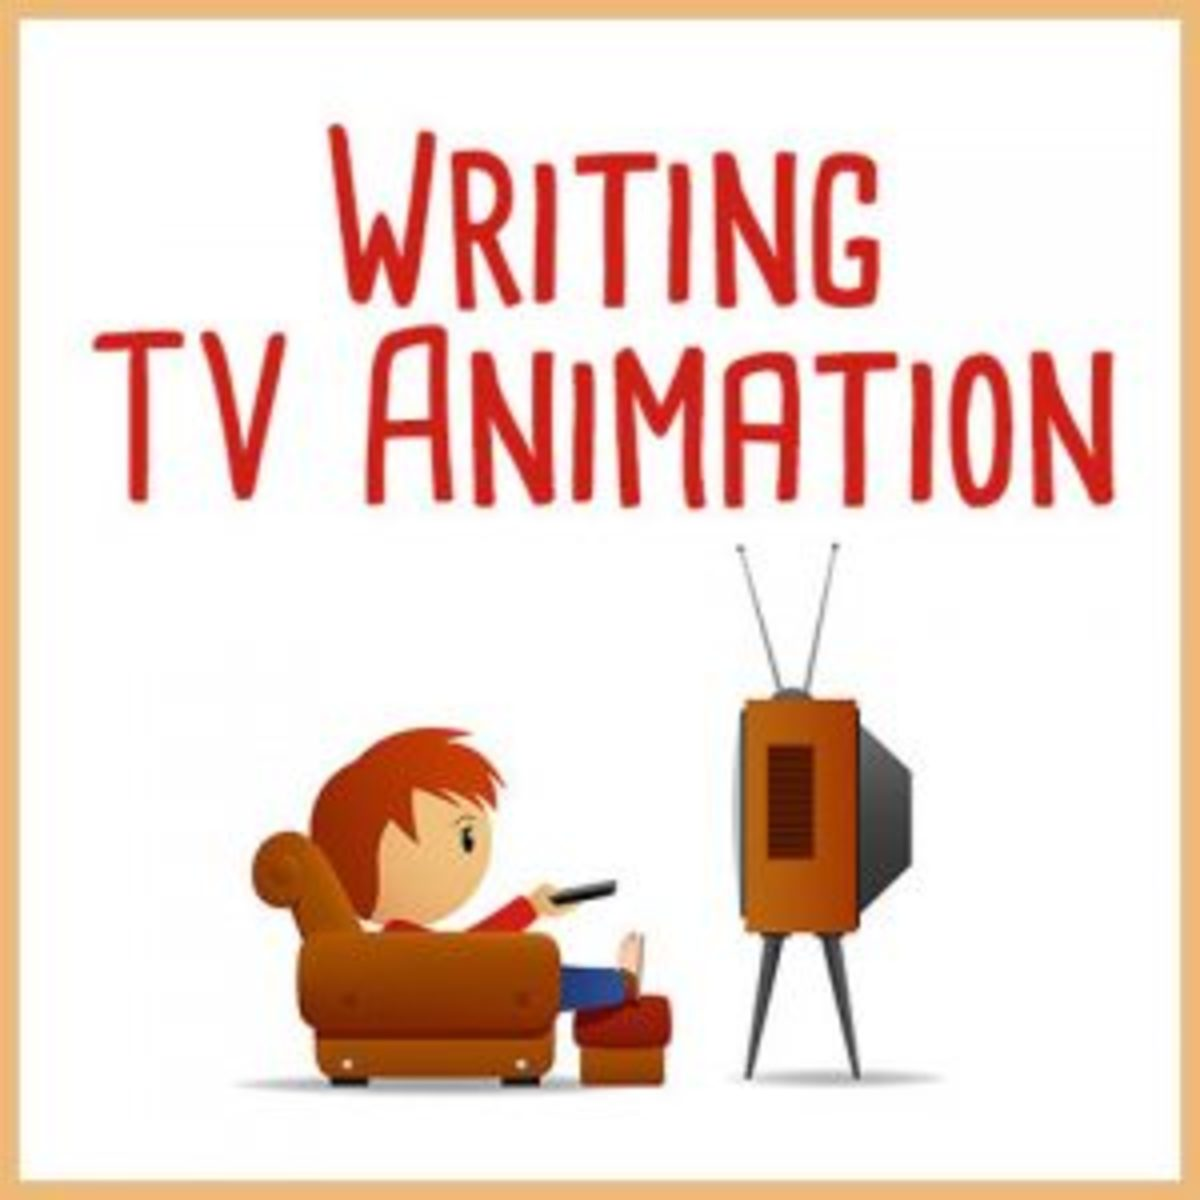 ws-writingtvanimation-500_medium-1